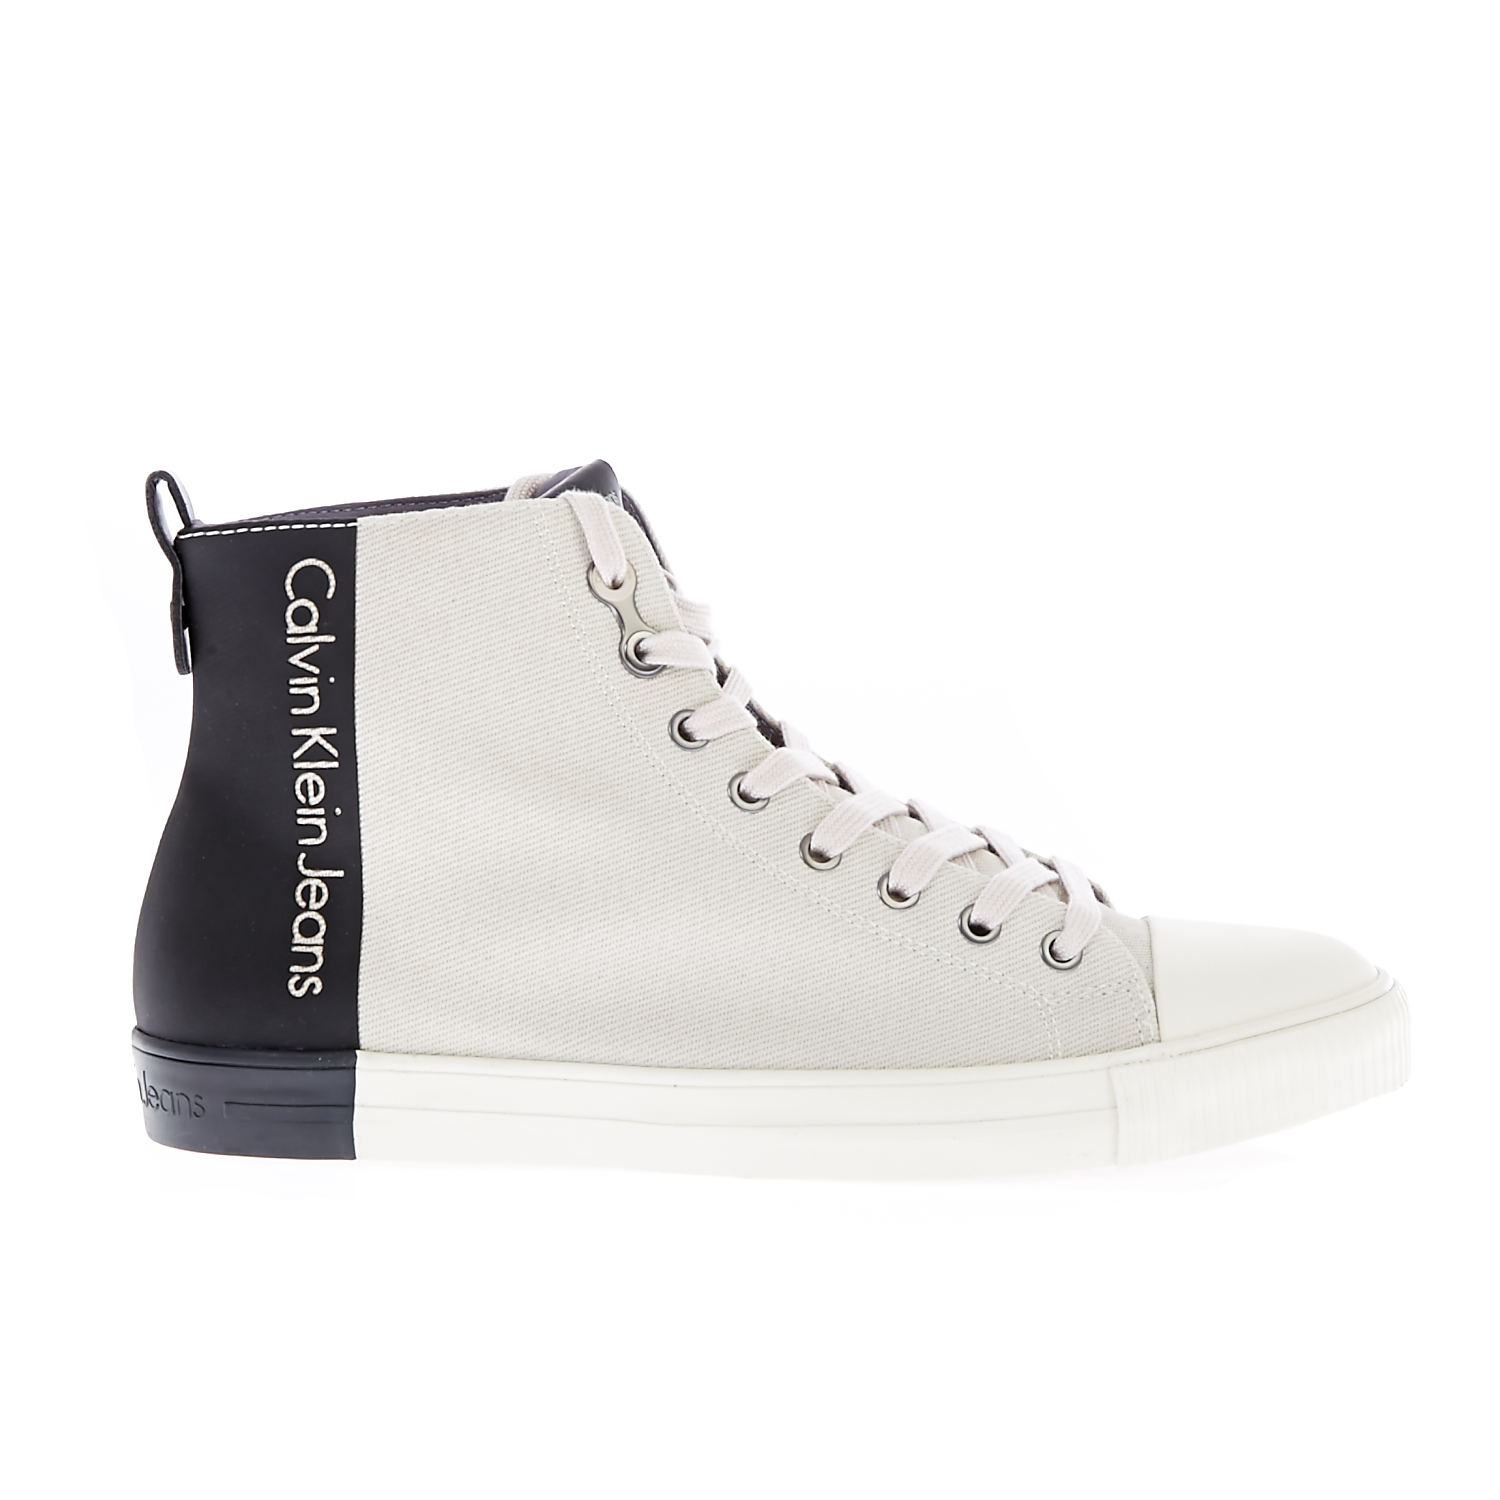 CALVIN KLEIN JEANS - Ανδρικά sneakers CALVIN KLEIN JEANS ARNAUD λευκά ανδρικά παπούτσια sneakers